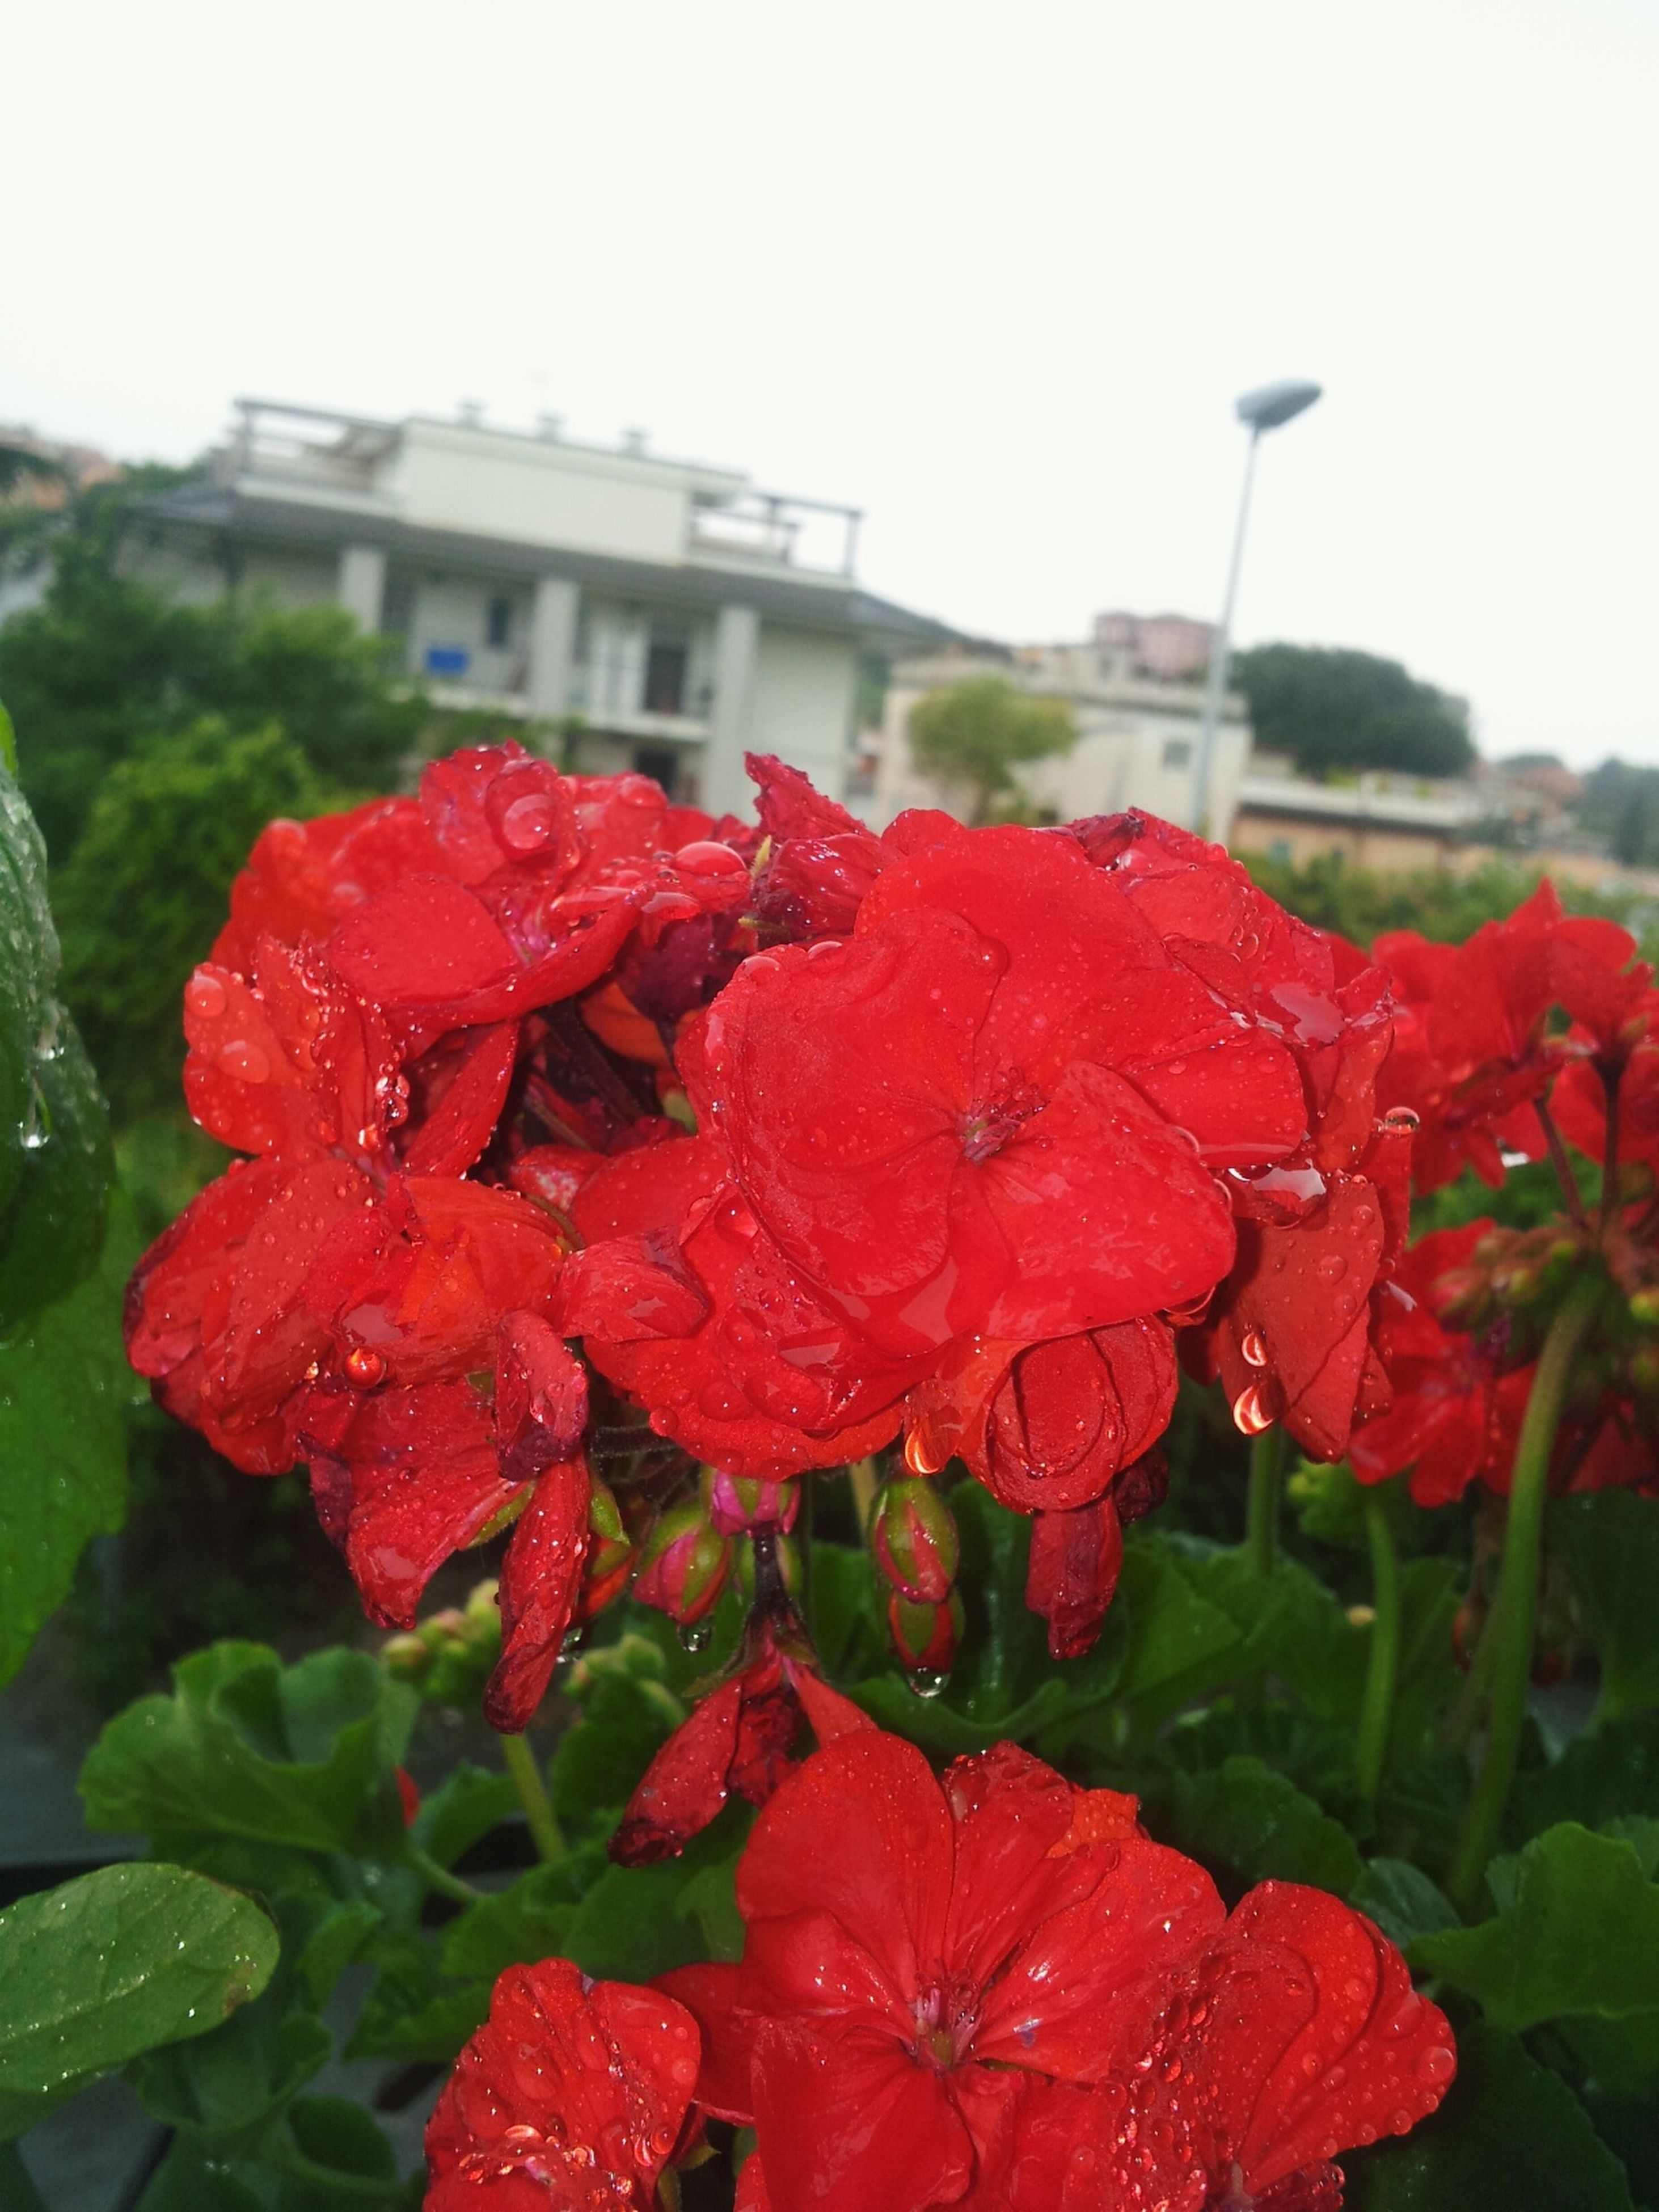 flower, freshness, red, fragility, petal, growth, drop, beauty in nature, flower head, blooming, focus on foreground, wet, plant, close-up, leaf, nature, water, in bloom, season, day